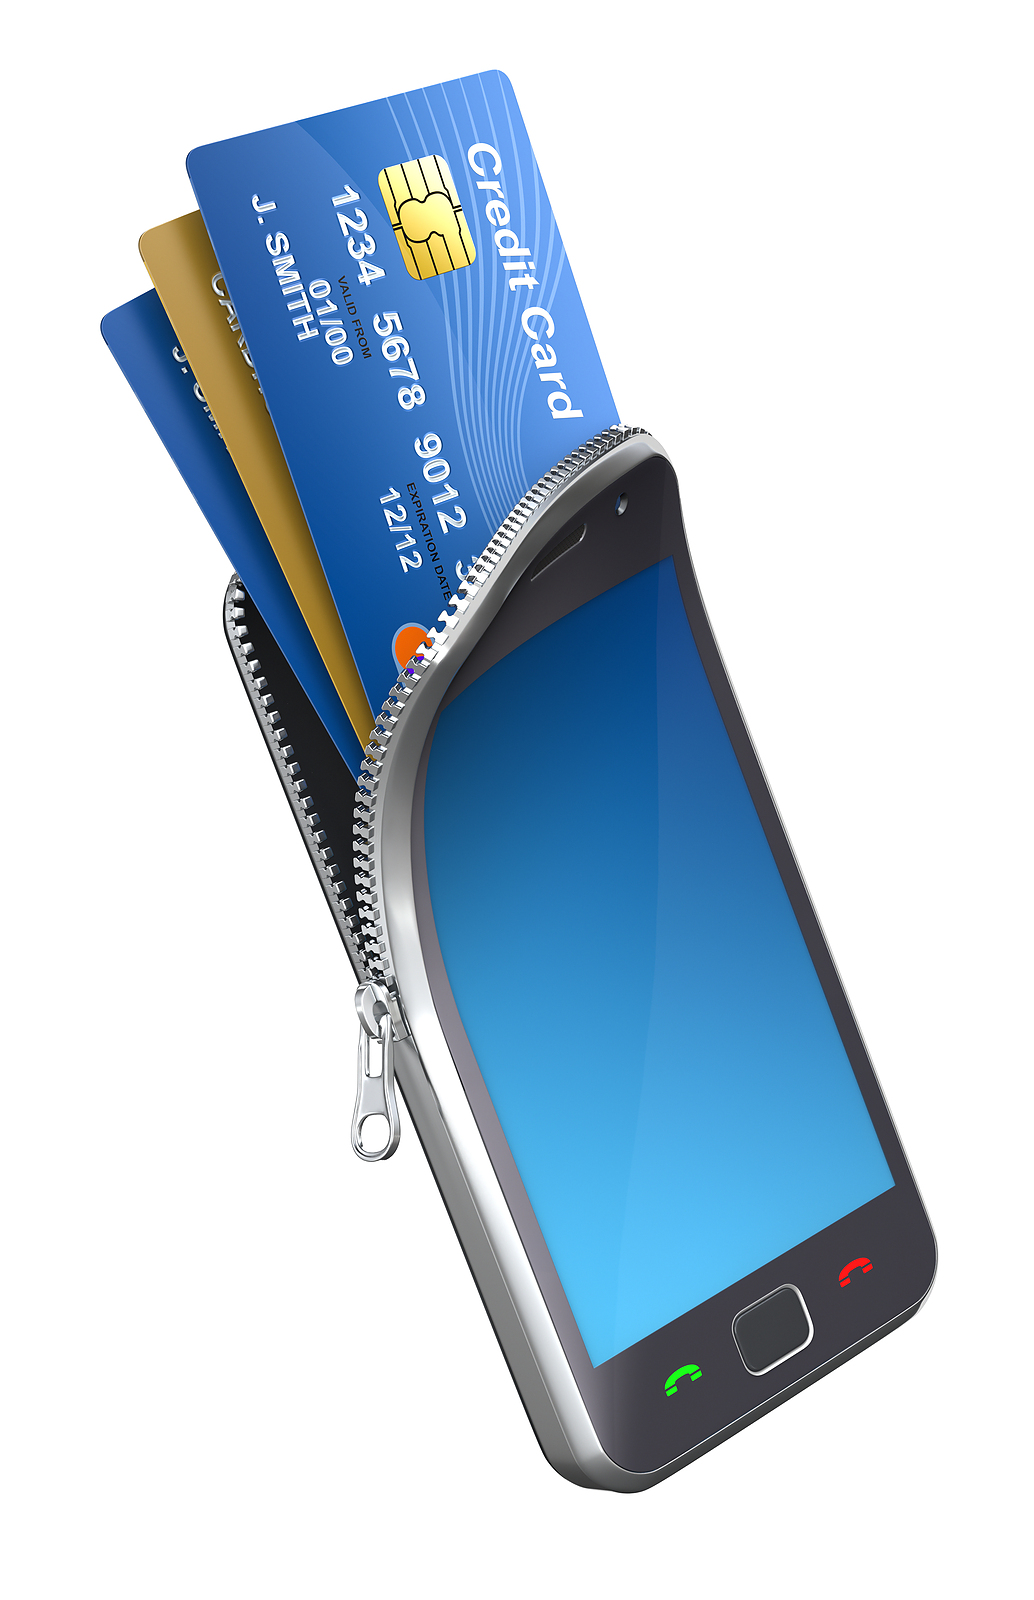 Read more about the article The Future of Mobile Payments